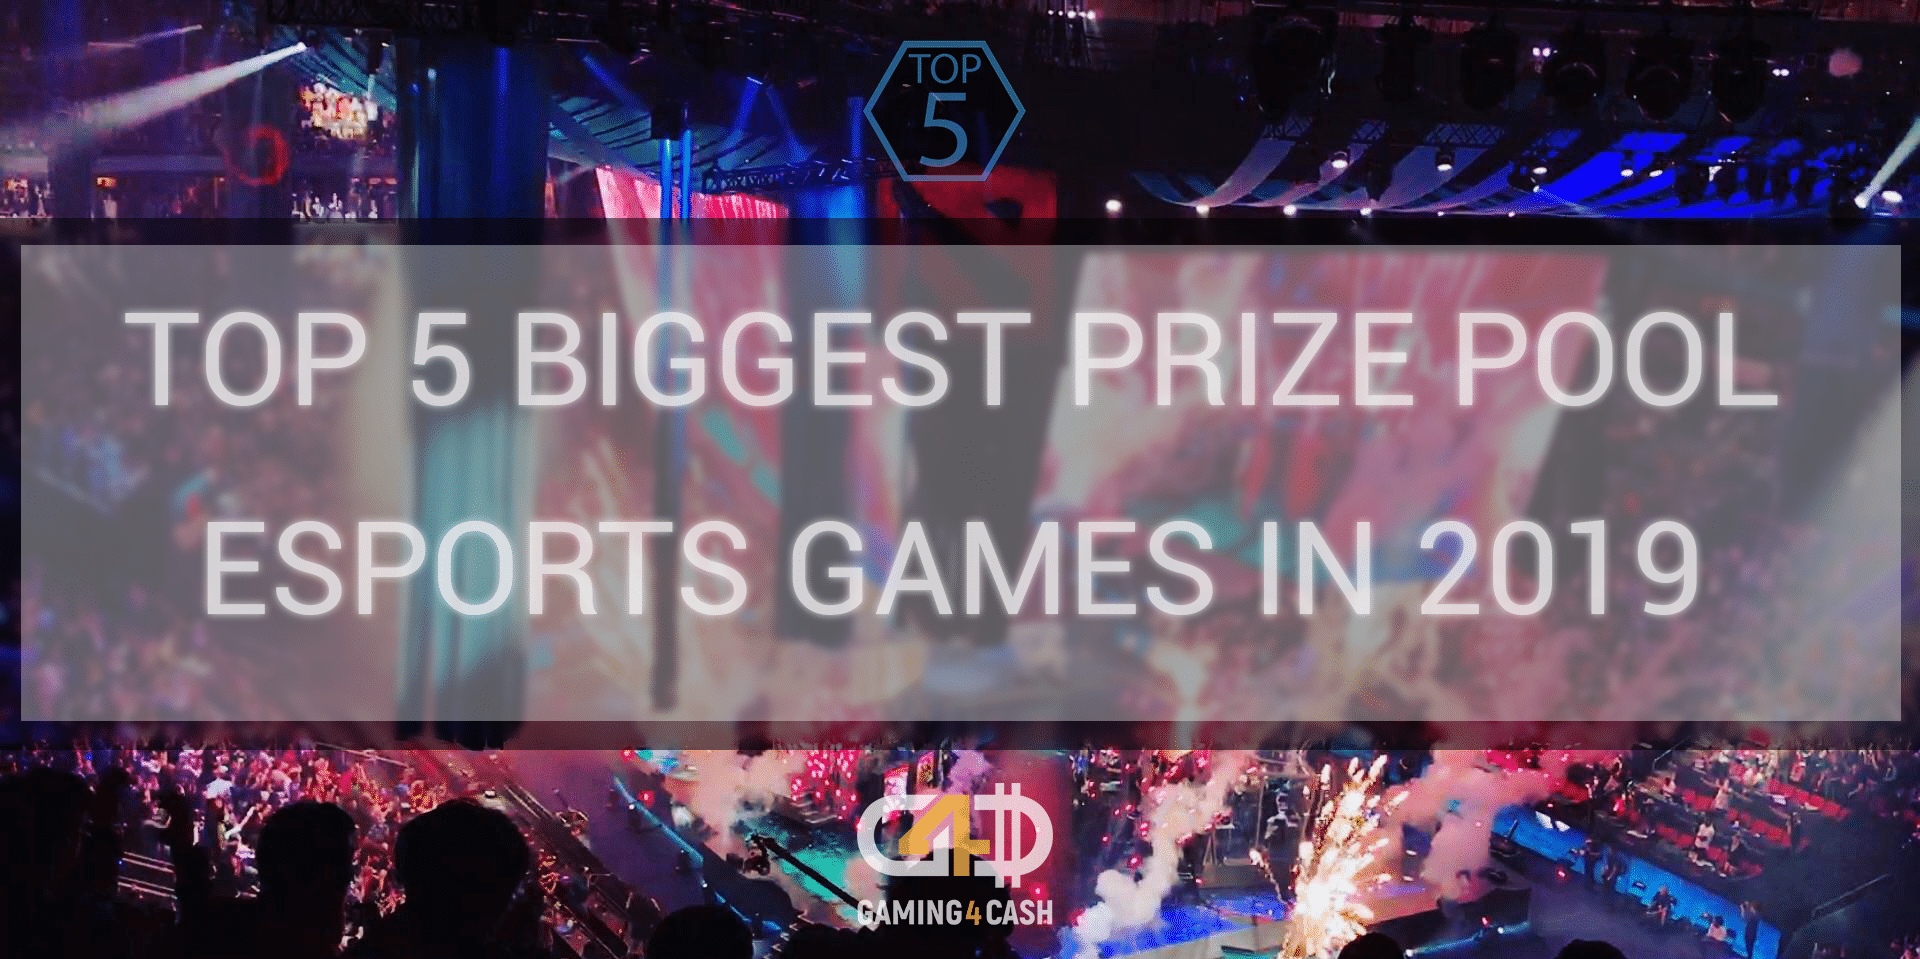 Top 5 Biggest Prize Pool Esports Games in 2019